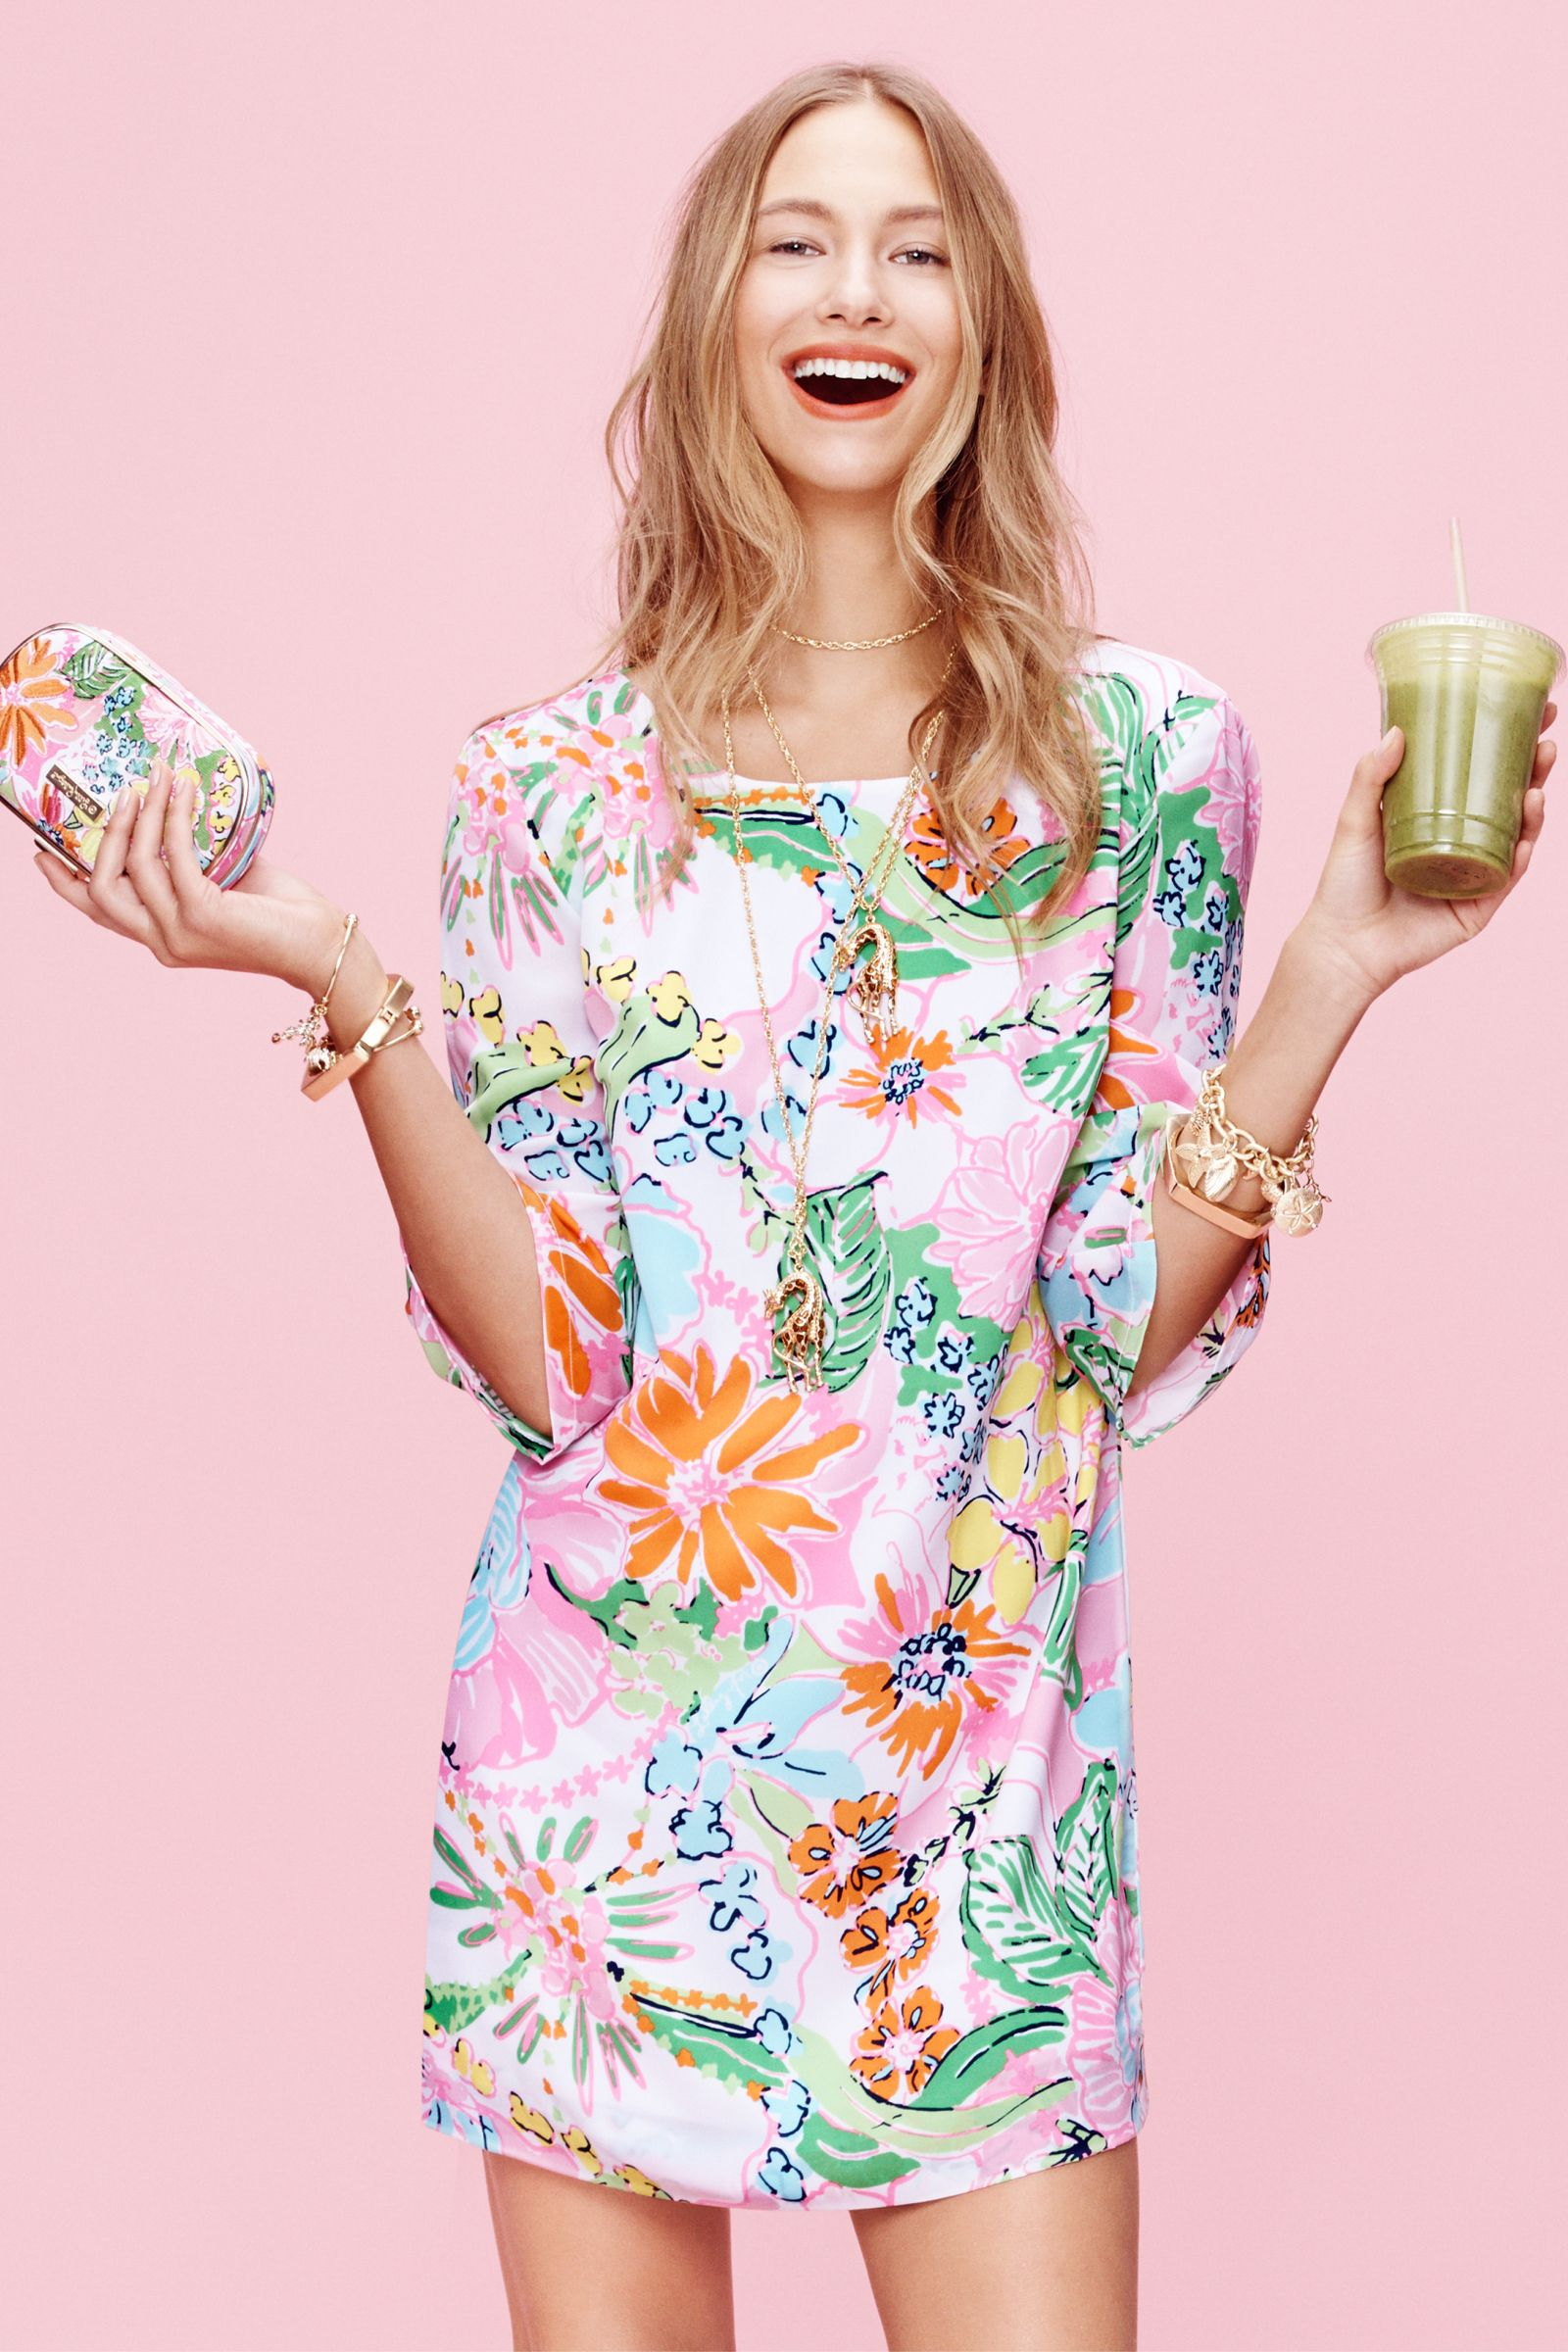 Forum on this topic: Target partners with Lilly Pulitzer, target-partners-with-lilly-pulitzer/